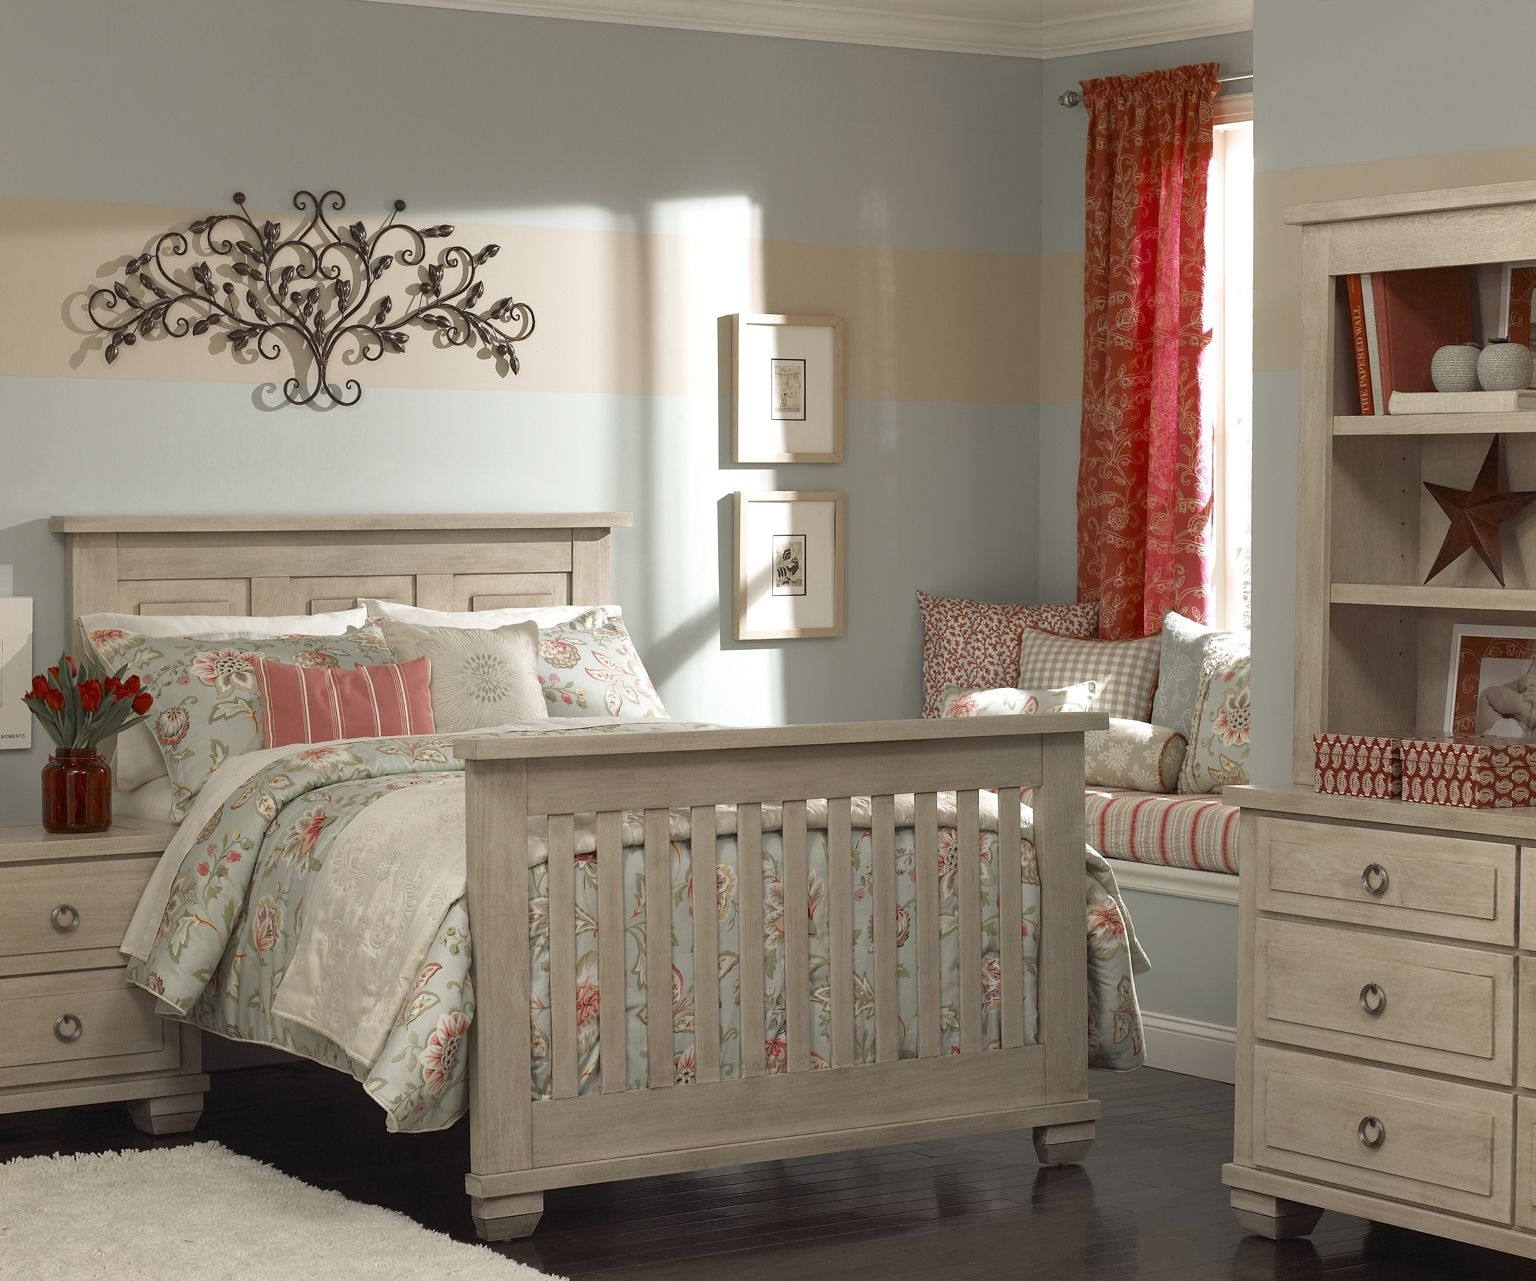 Used crib for sale atlanta - Echelon Sonoma Collection In Driftwood Converted From Crib To Full Size Bed